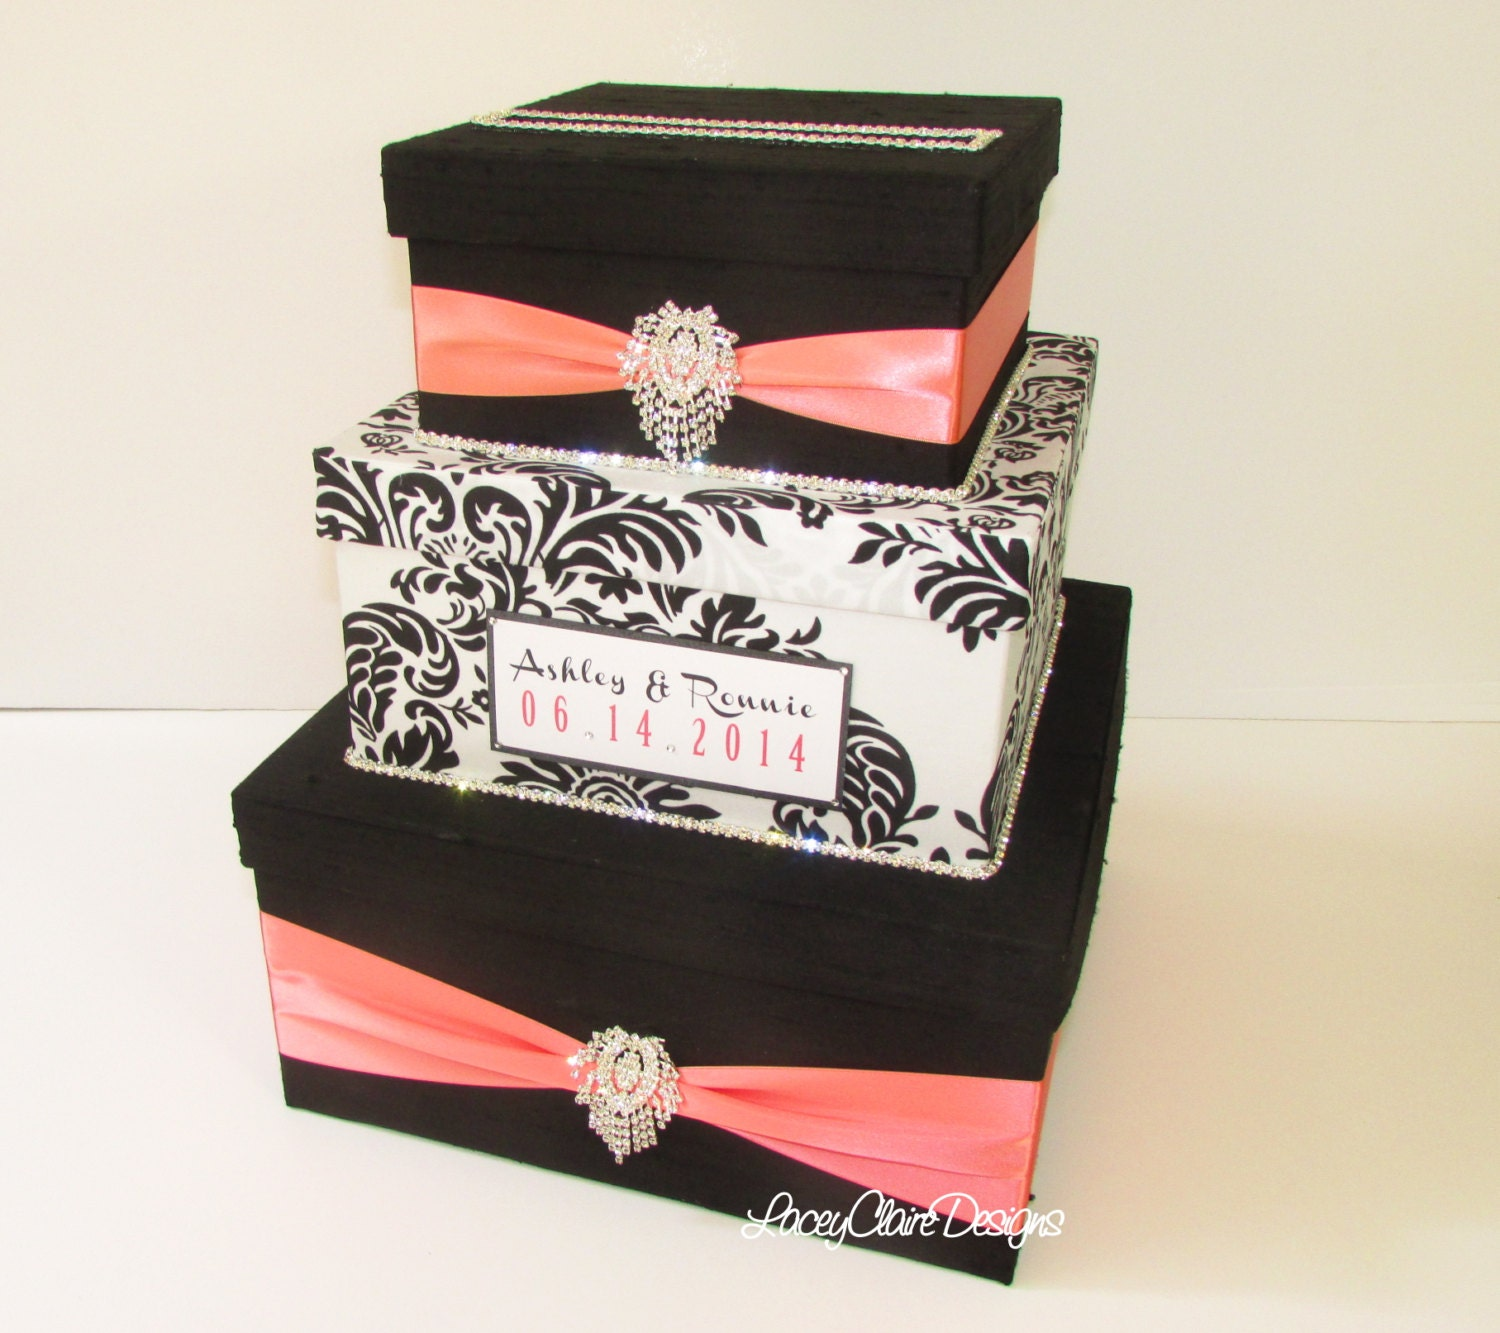 Wedding Card Holder Gift Ideas: Wedding Gift Box Card Box Money Holder Envelope Reception